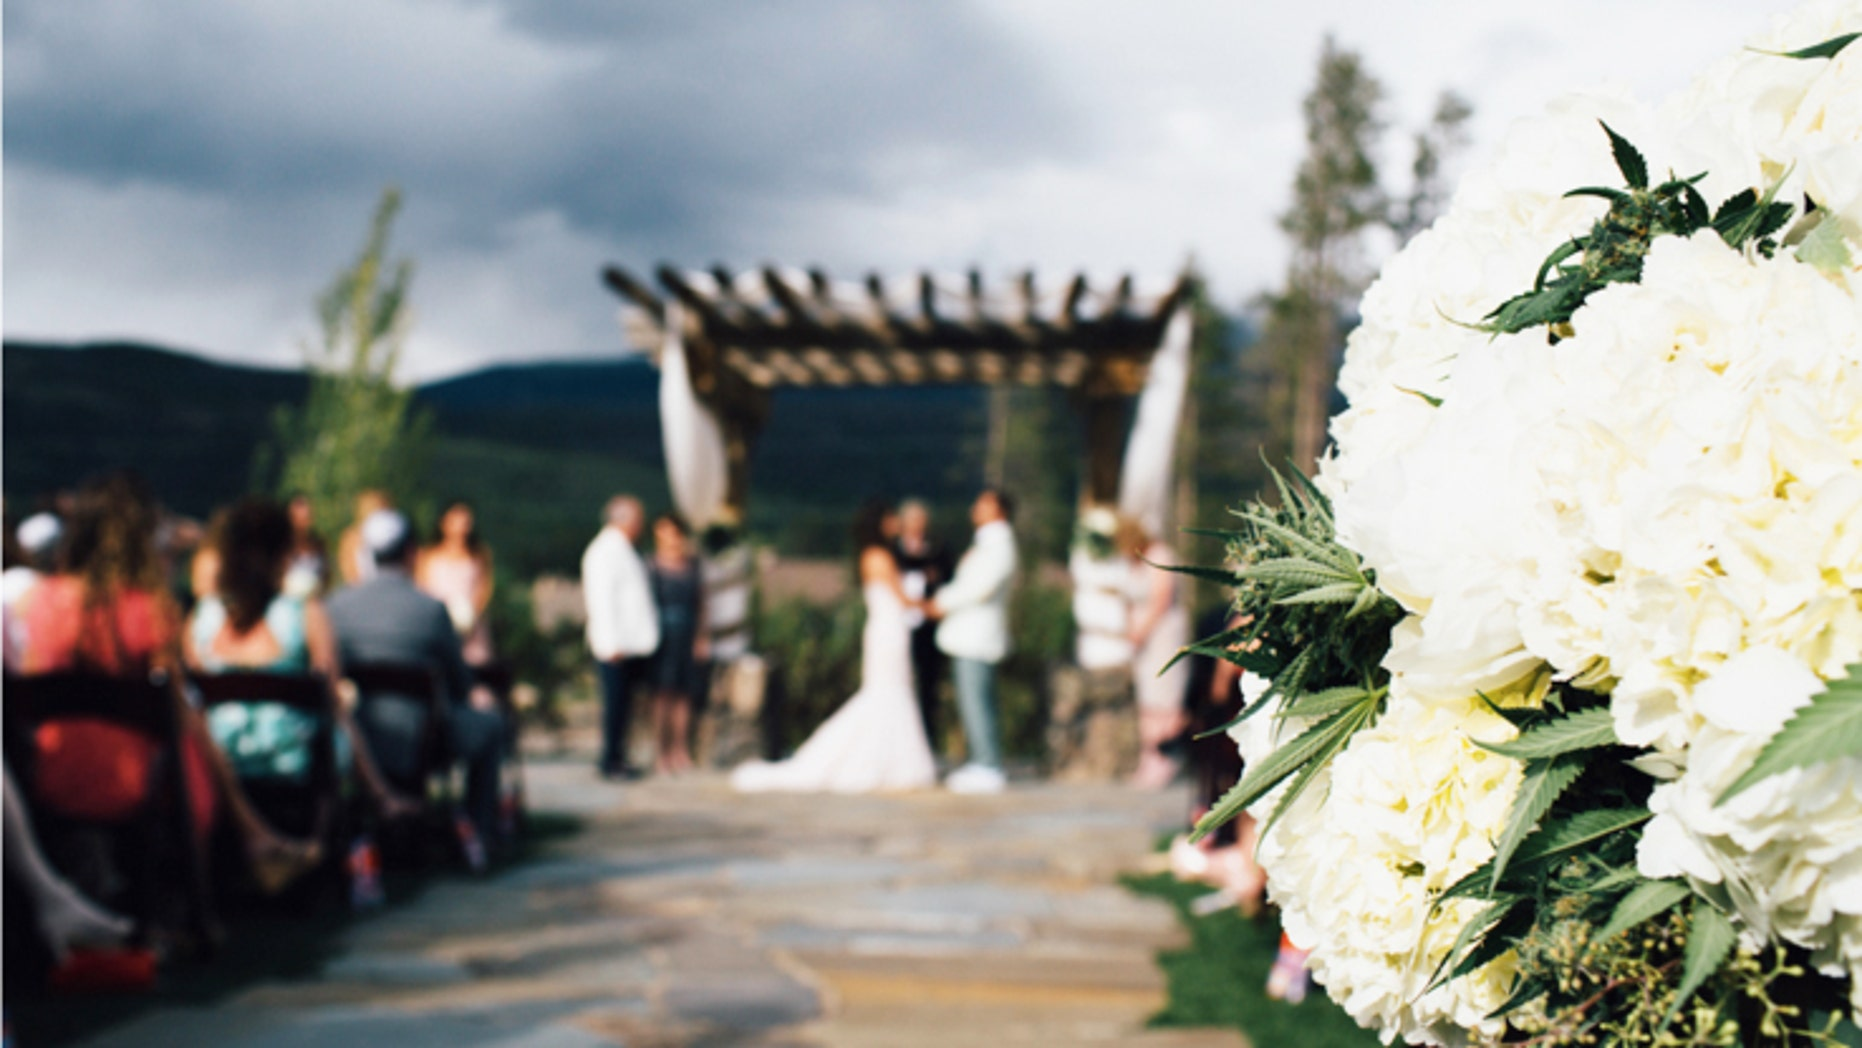 Creative couples can incorporate the cannabis plant into wedding day floral decor.